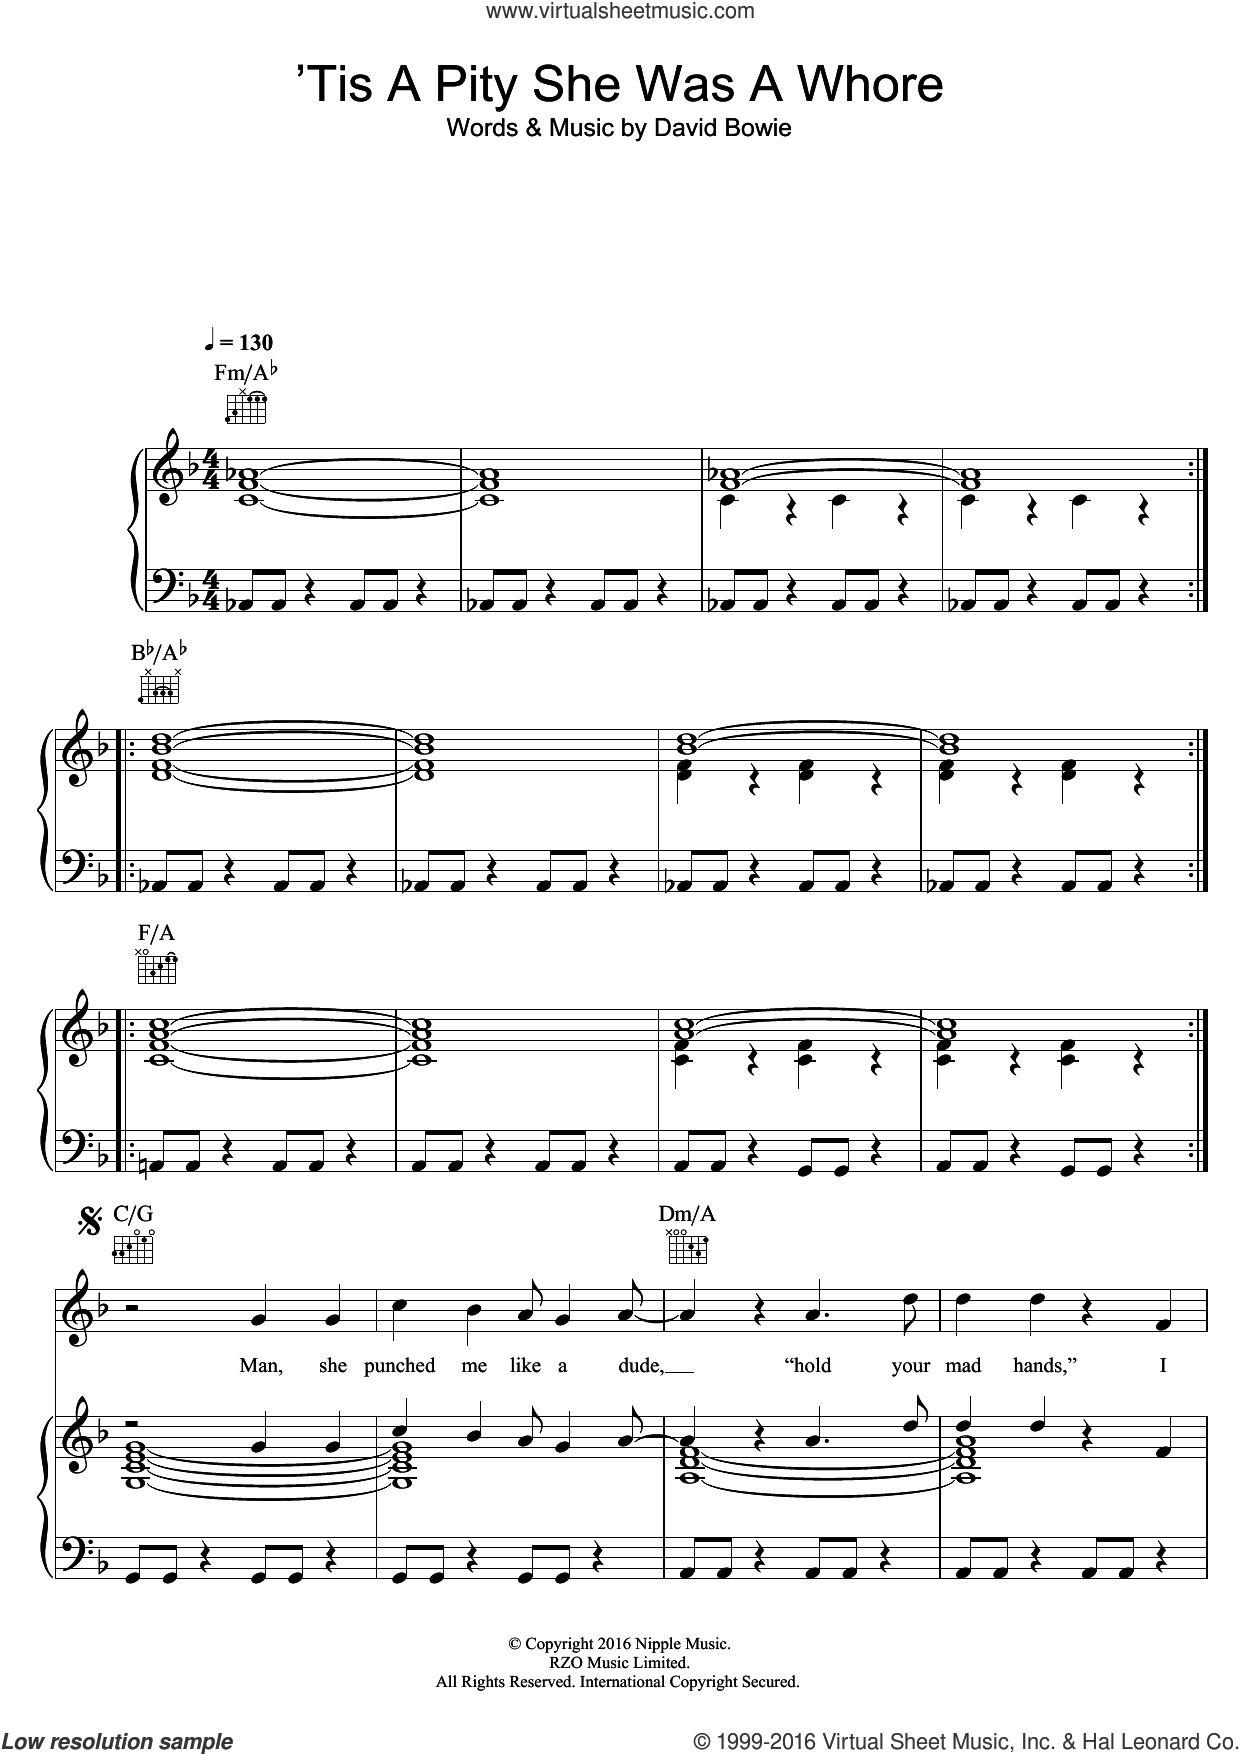 'Tis A Pity She Was A Whore sheet music for voice, piano or guitar by David Bowie, intermediate skill level